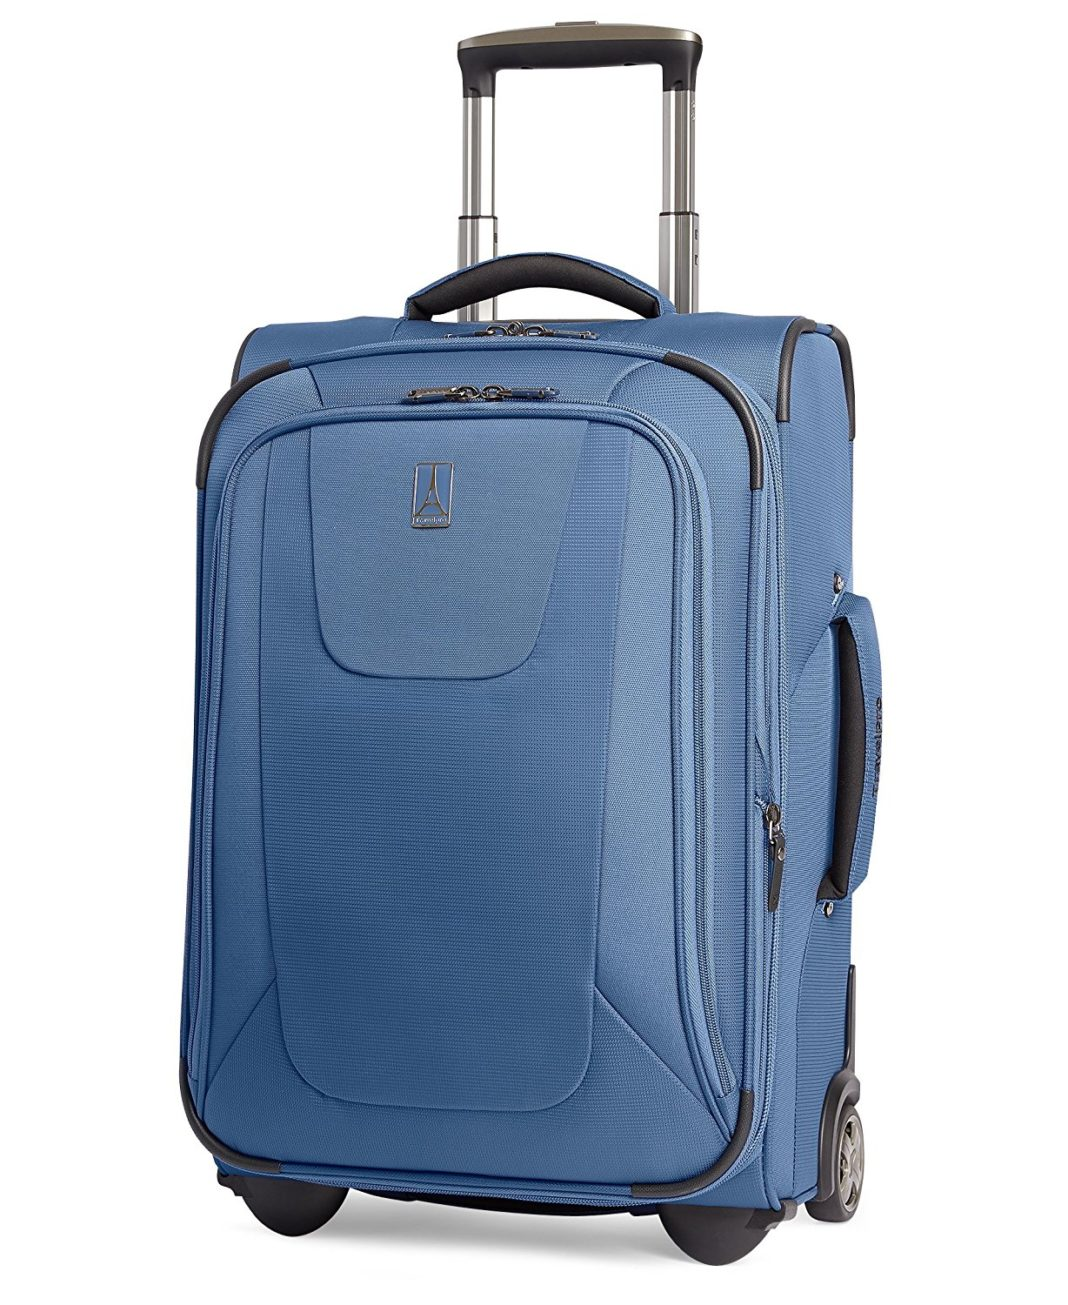 Lightweight Cabin Luggage Best Lightweight Luggage Reviewed Plus How To Choose Yours